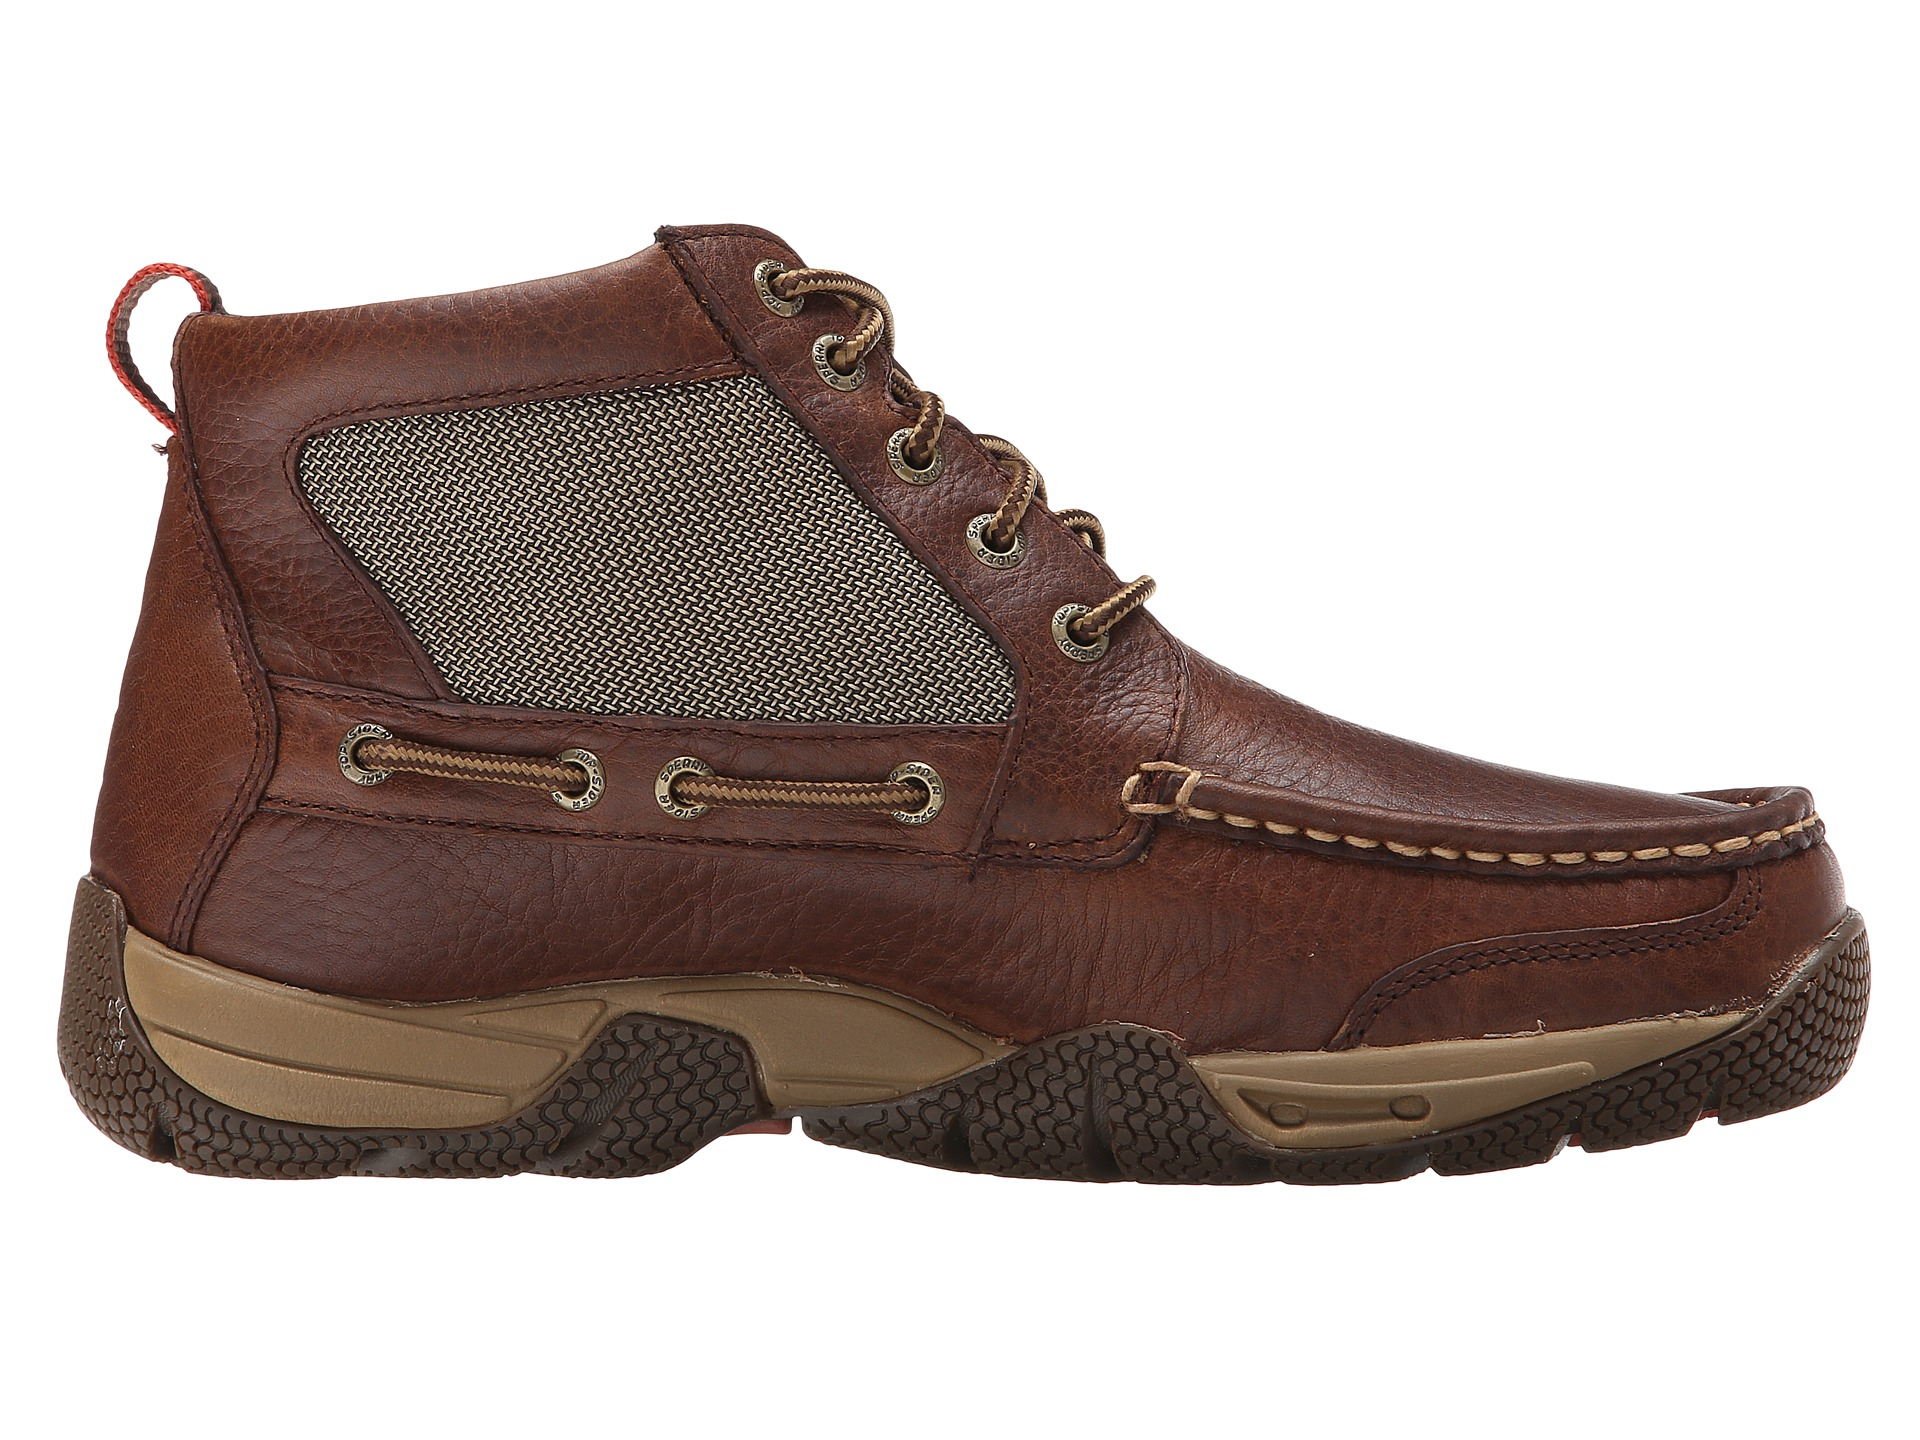 Luxury J.crew Sperry Wool And Leather Chukka Boots In Brown For Men | Lyst